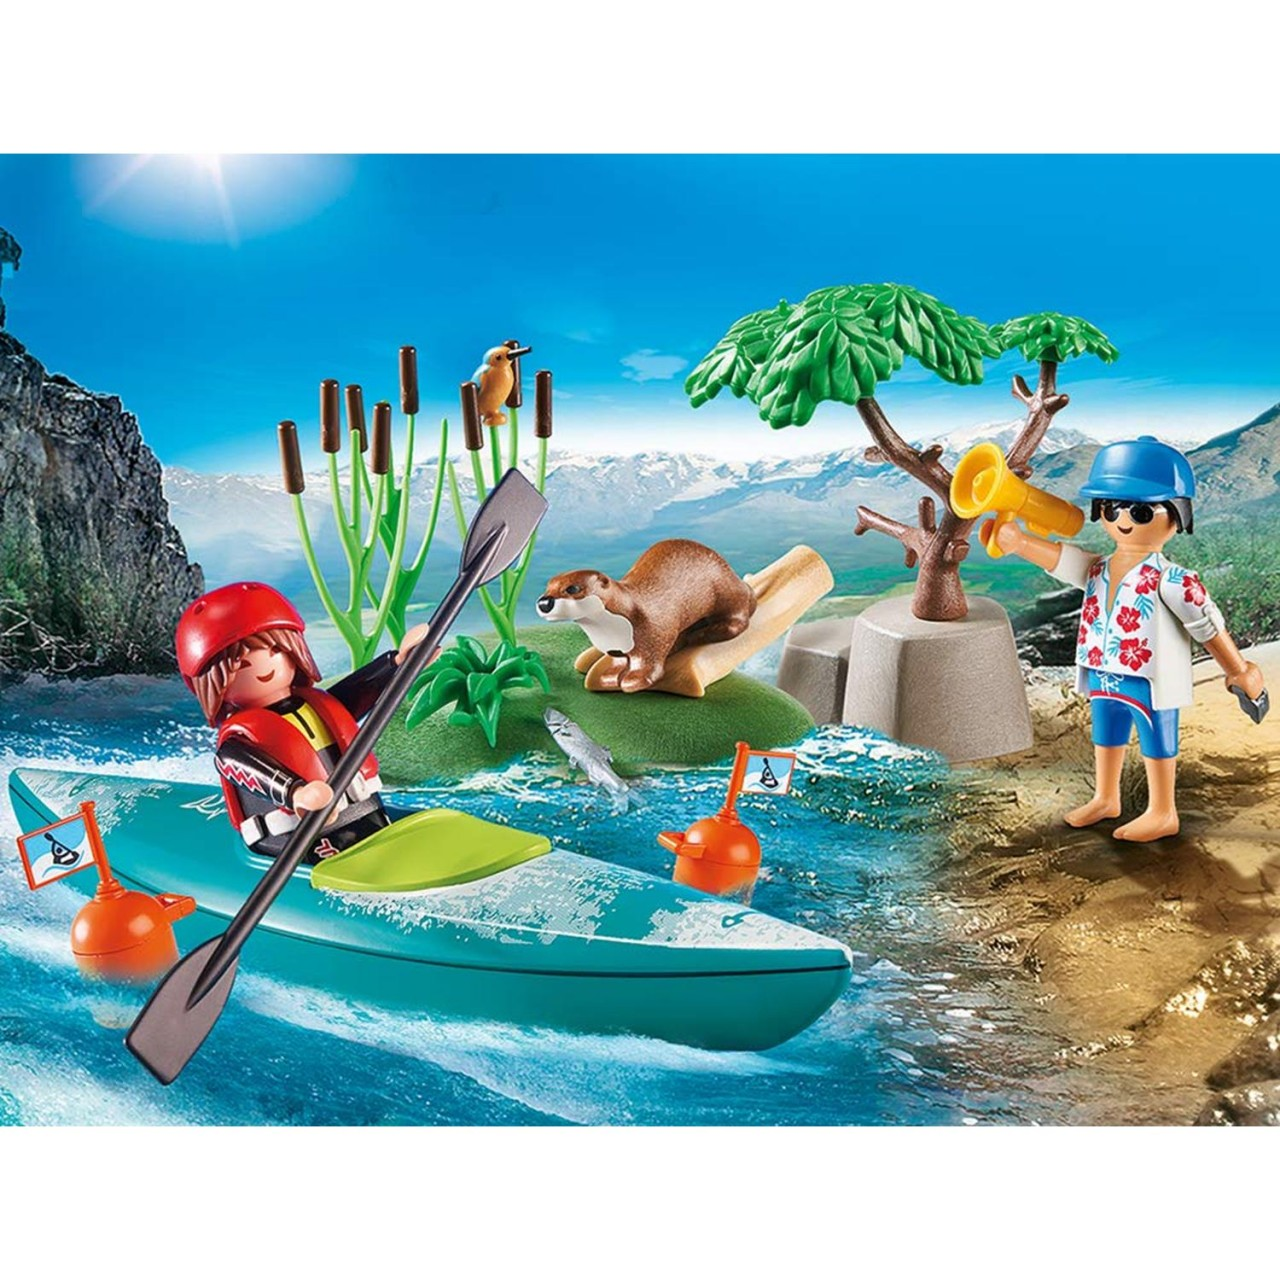 Playmobil 70035 StarterPack Kanu-Training